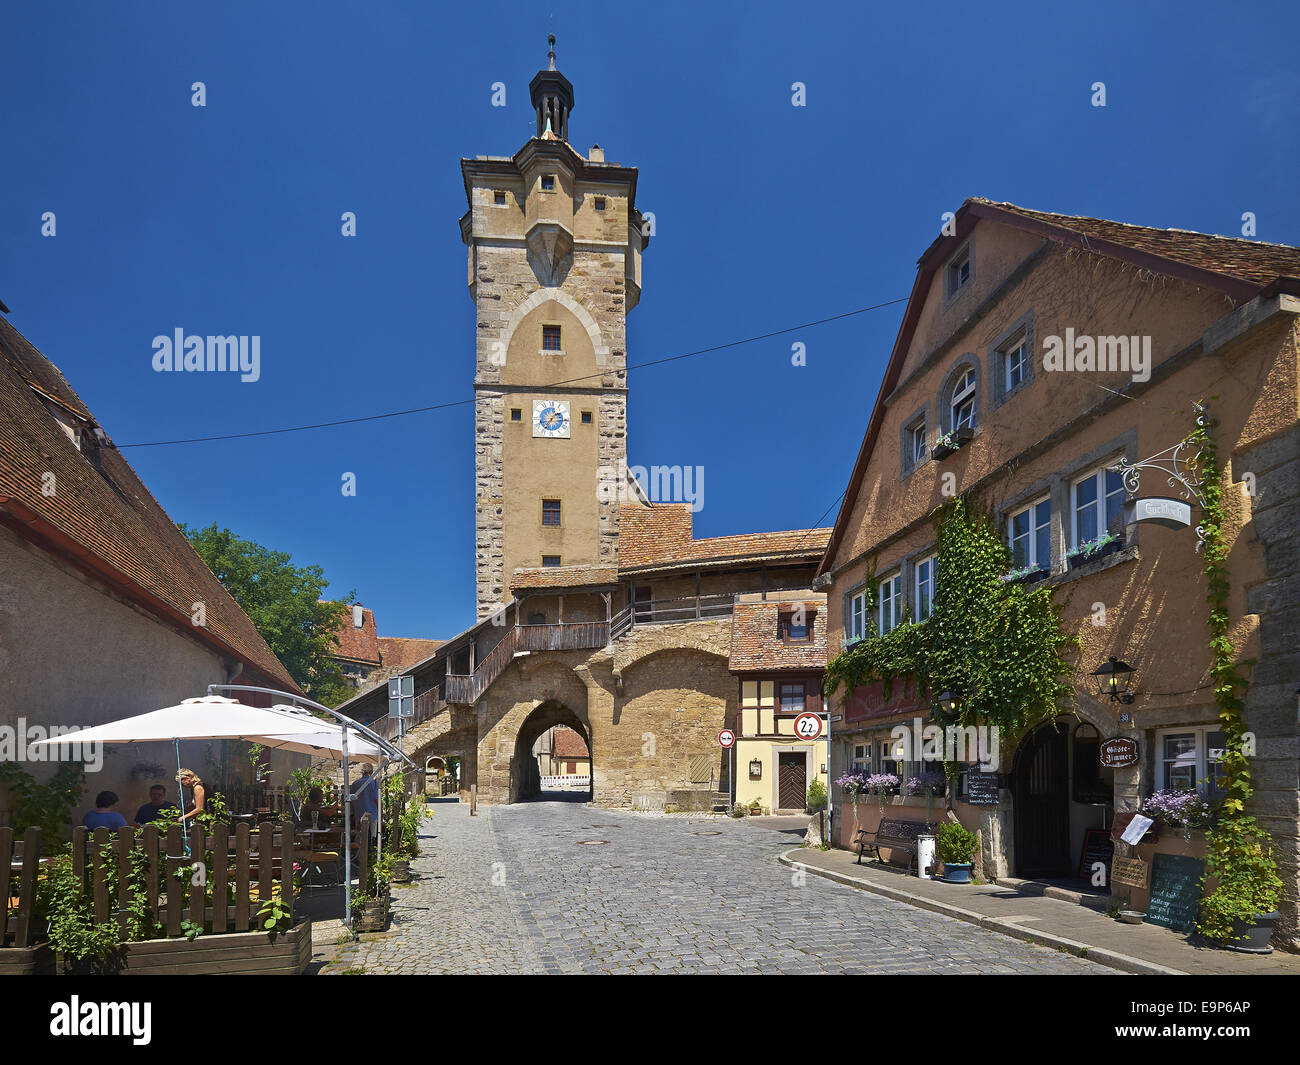 klingentor in rothenburg ob der tauber bavaria germany stock photo 74861326 alamy. Black Bedroom Furniture Sets. Home Design Ideas